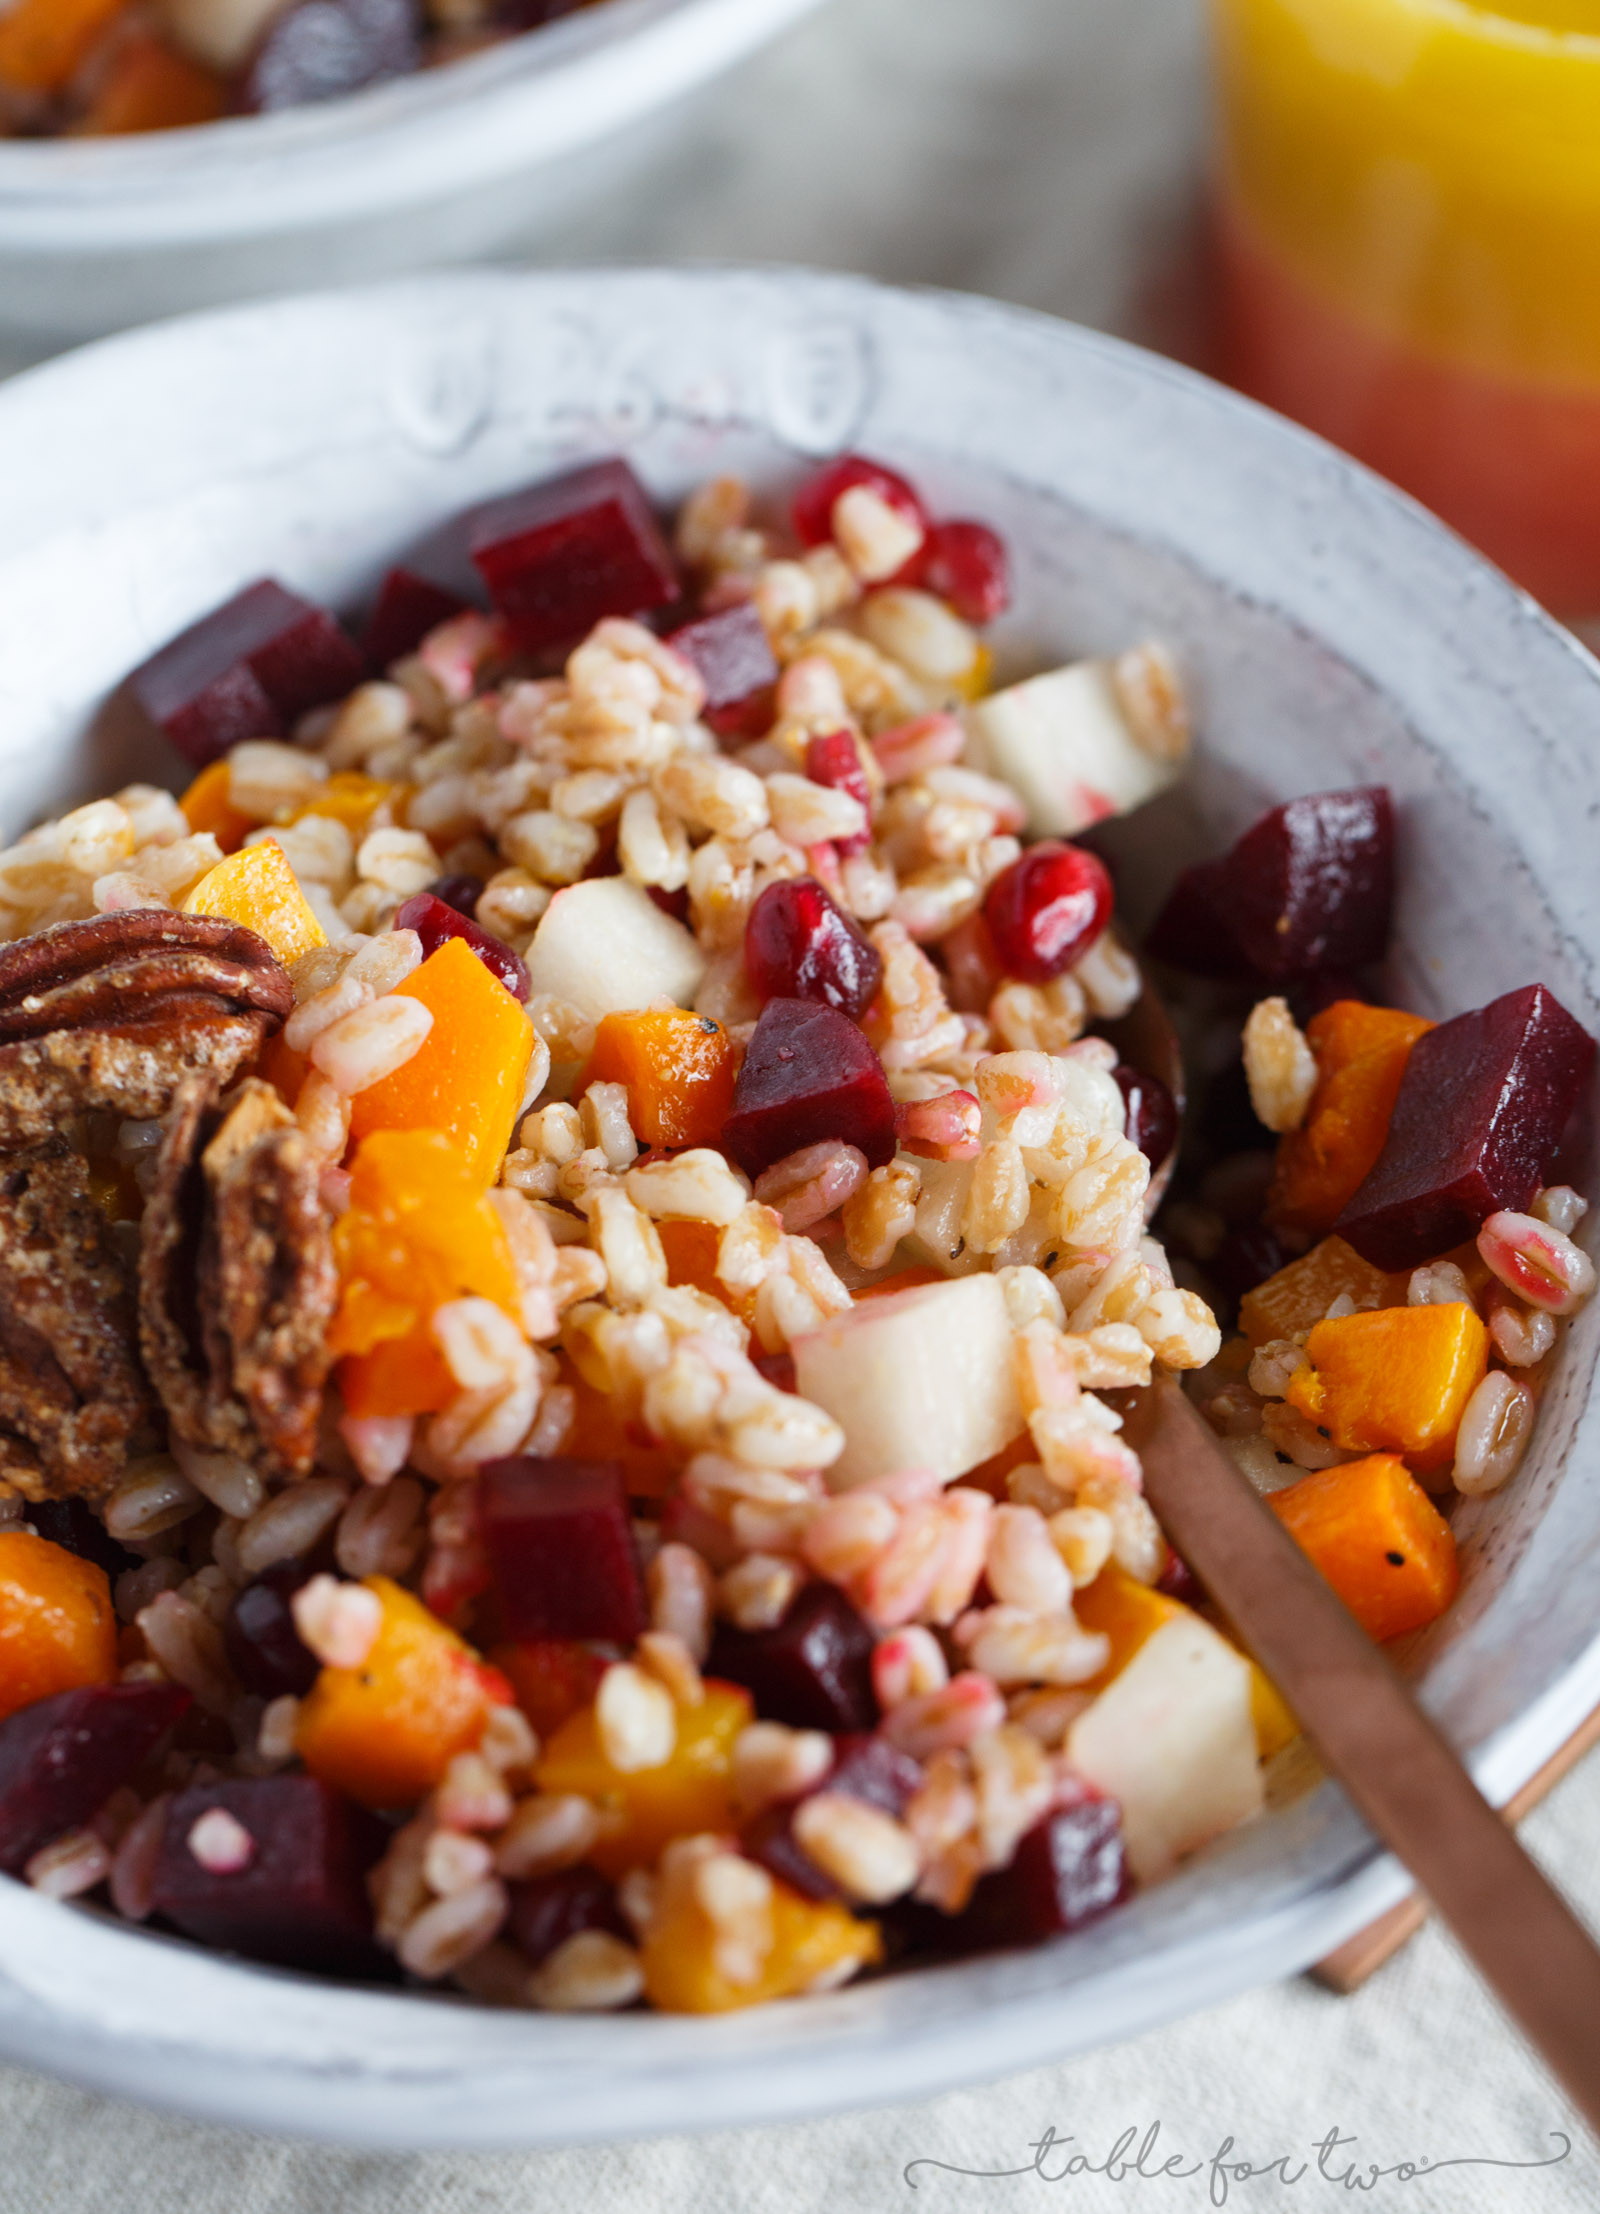 This winter farro salad can turn any drab winter day to a bright one! The farro salad is full of vibrant colors and ingredients and topped off with a sweet and tangy blood orange vinaigrette that finishes the salad perfectly!